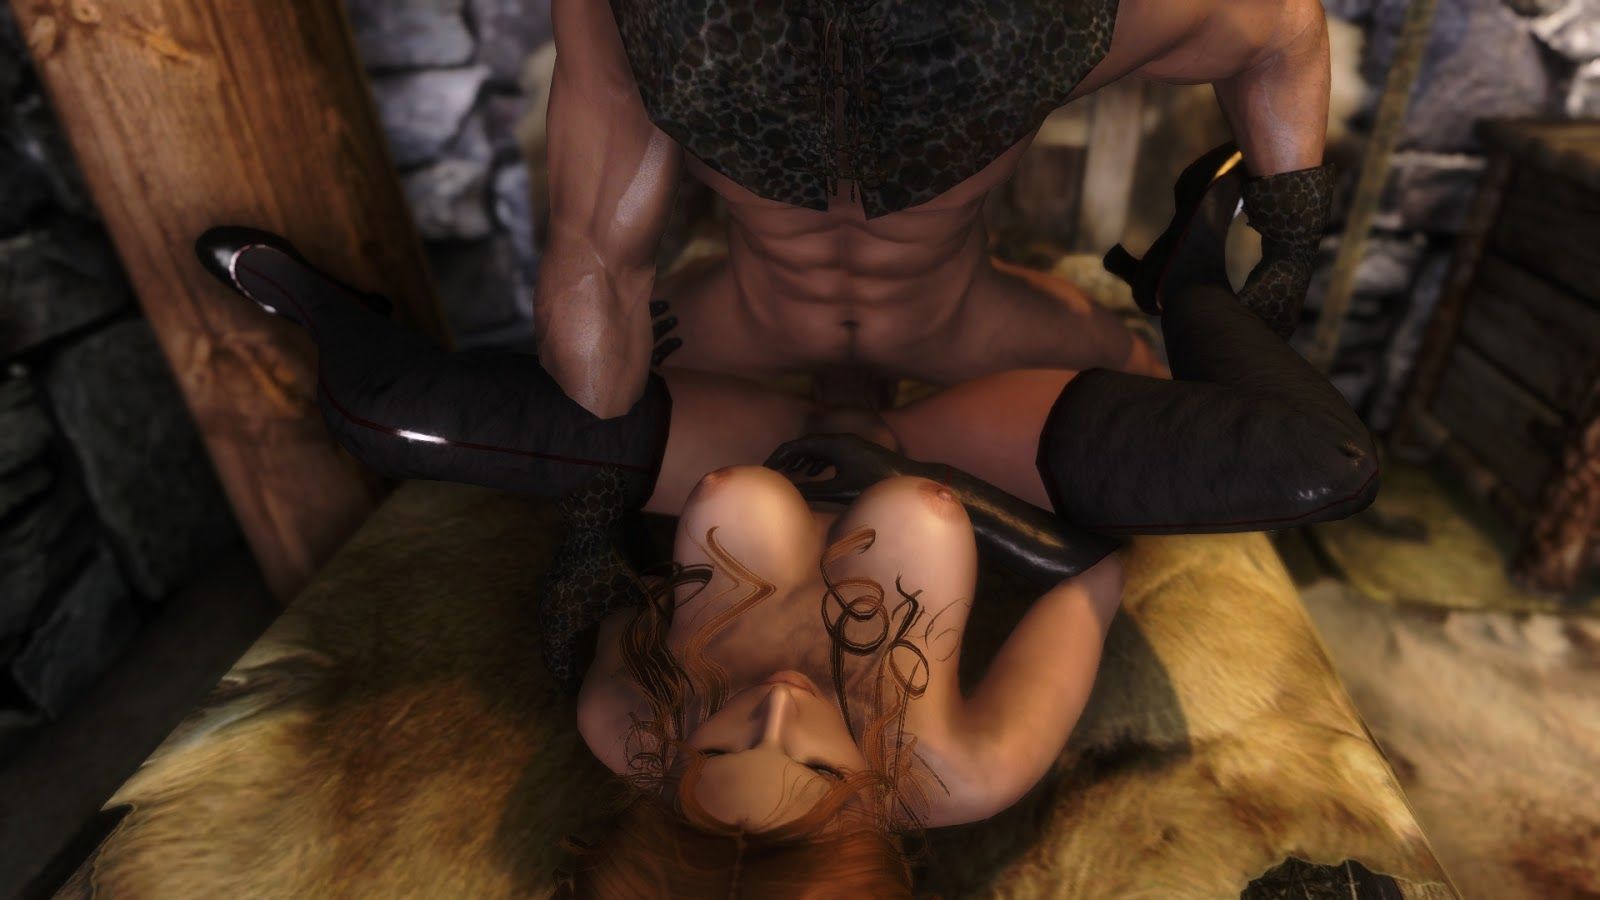 Skyrim adult-only mods sex hardcore naked scenes